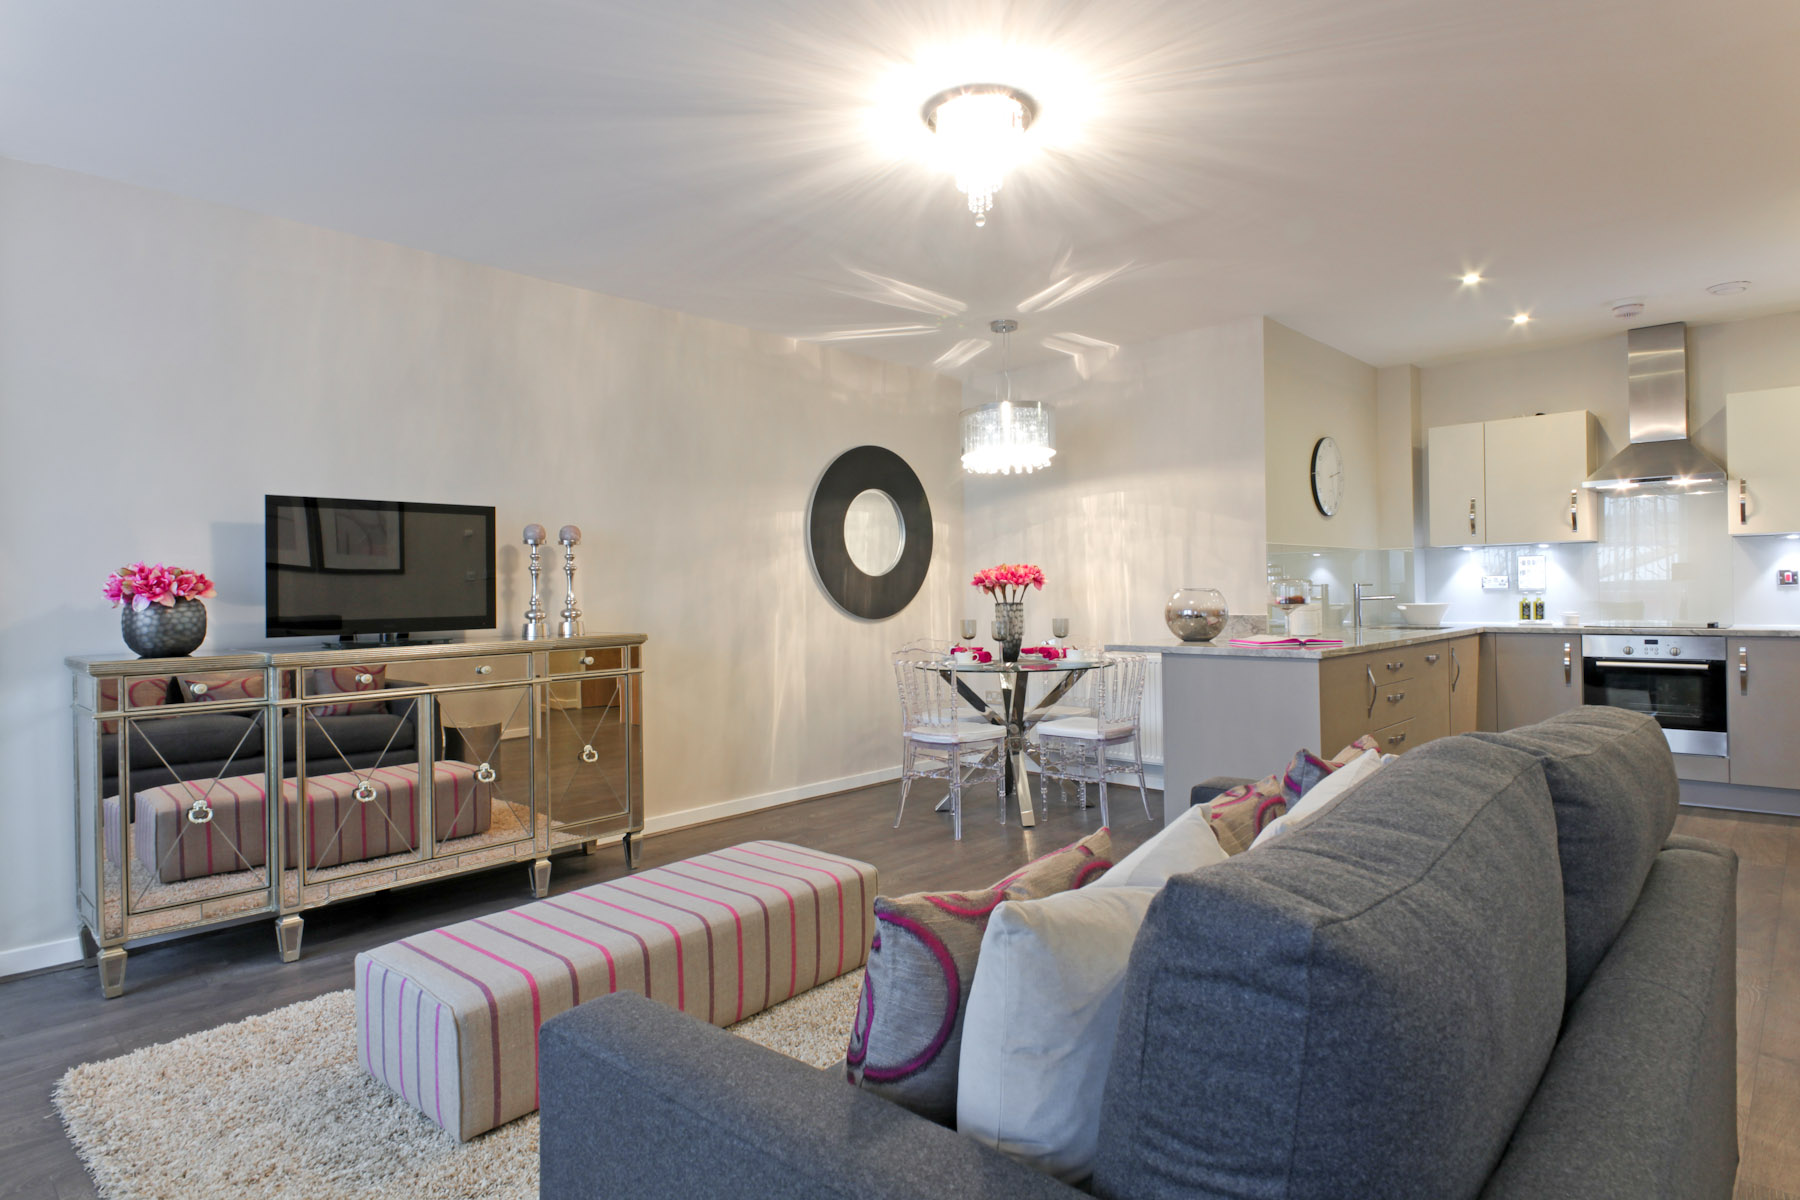 TW Exeter - Cranbrook - Farndale example living area